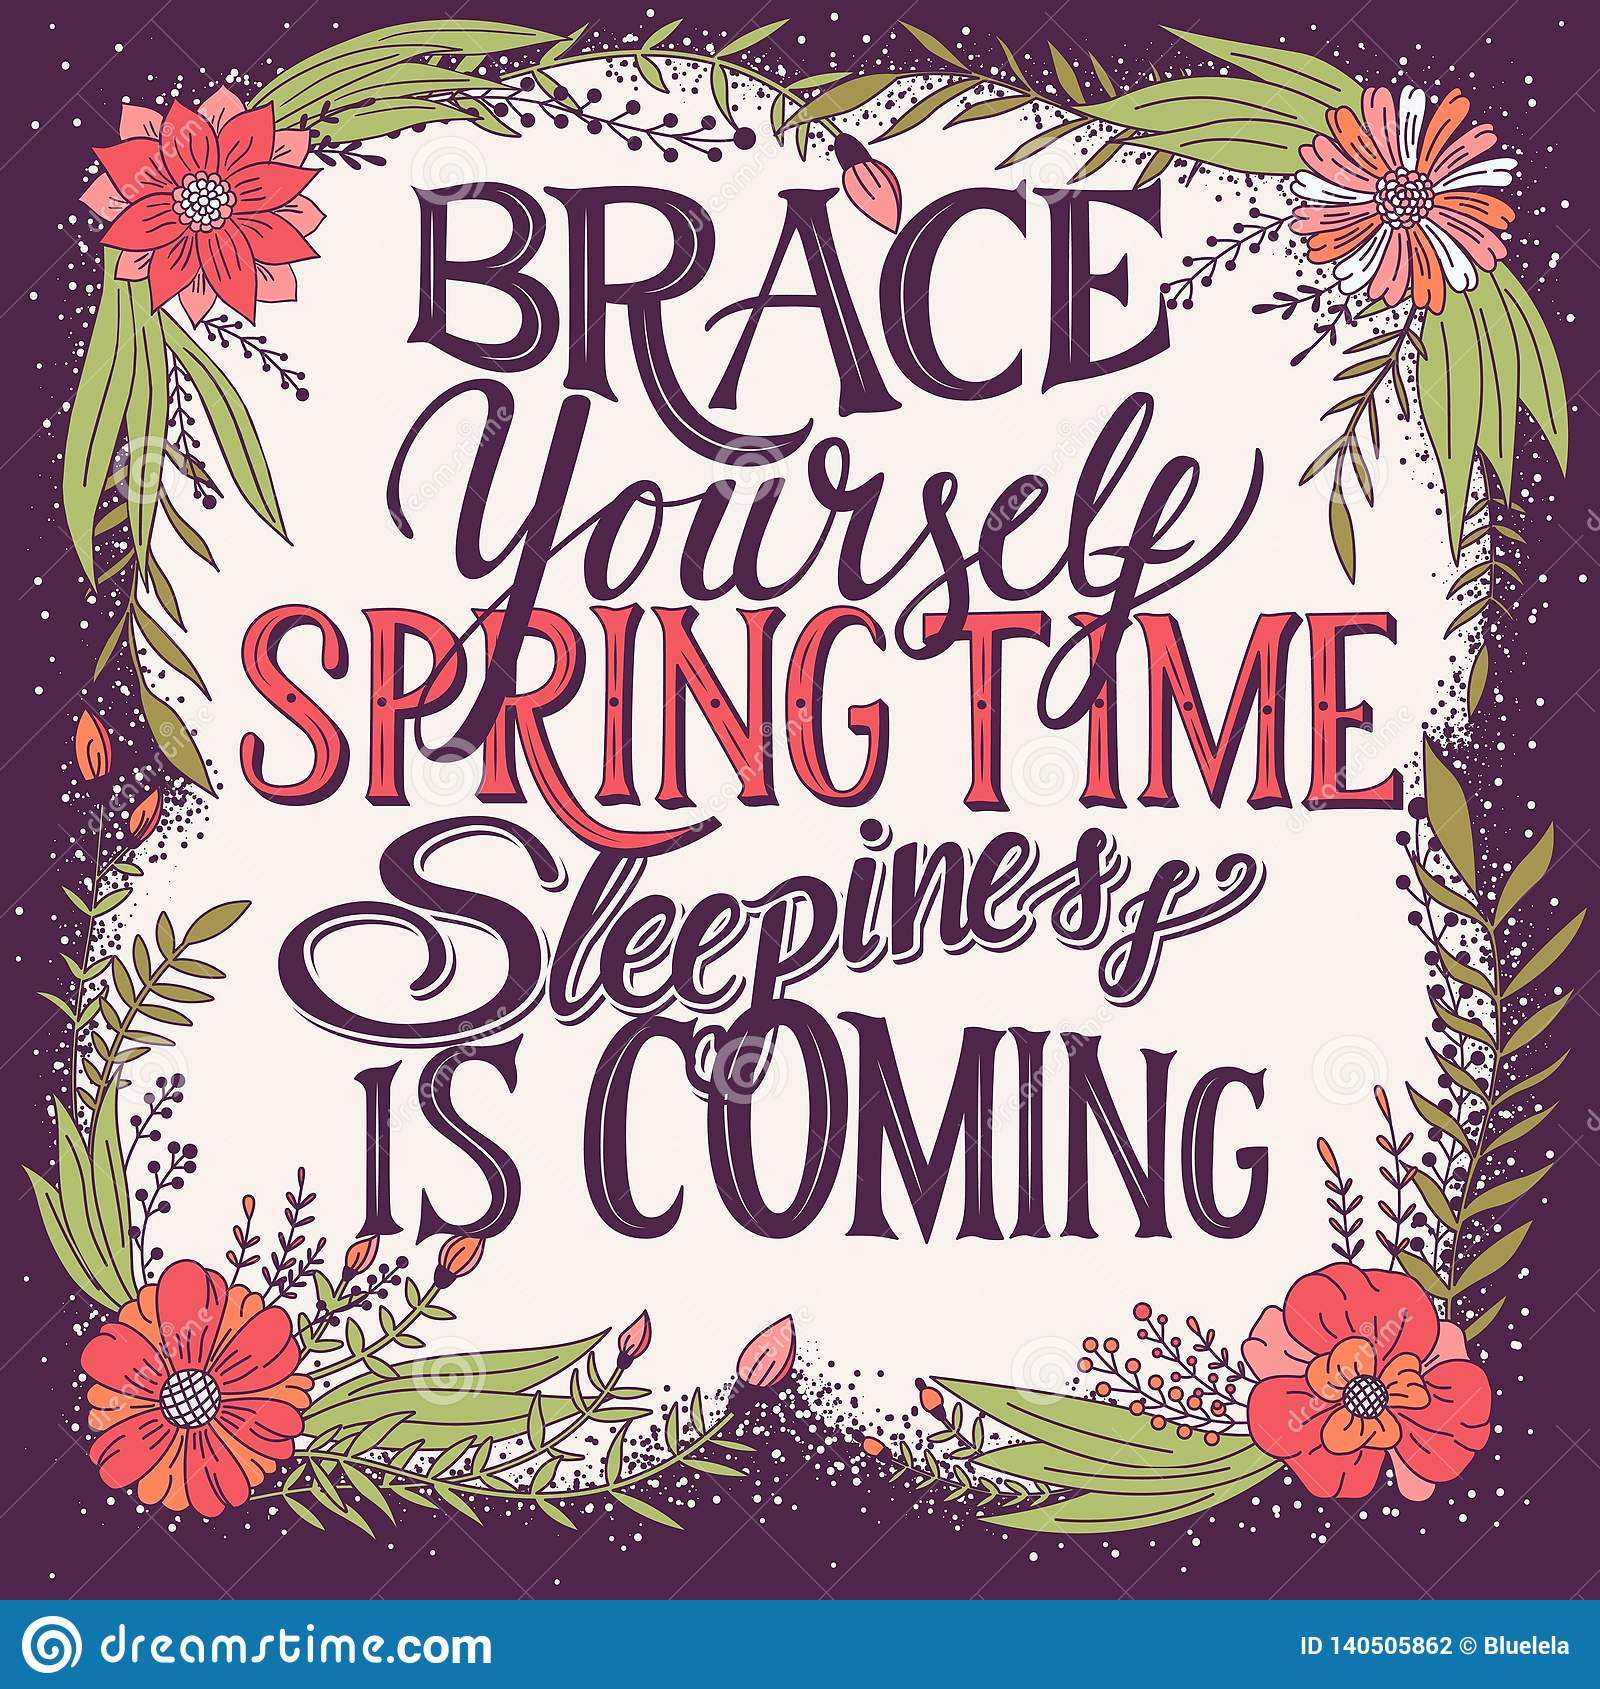 Brace yourself spring time sleepiness is coming, hand lettering typography modern poster design